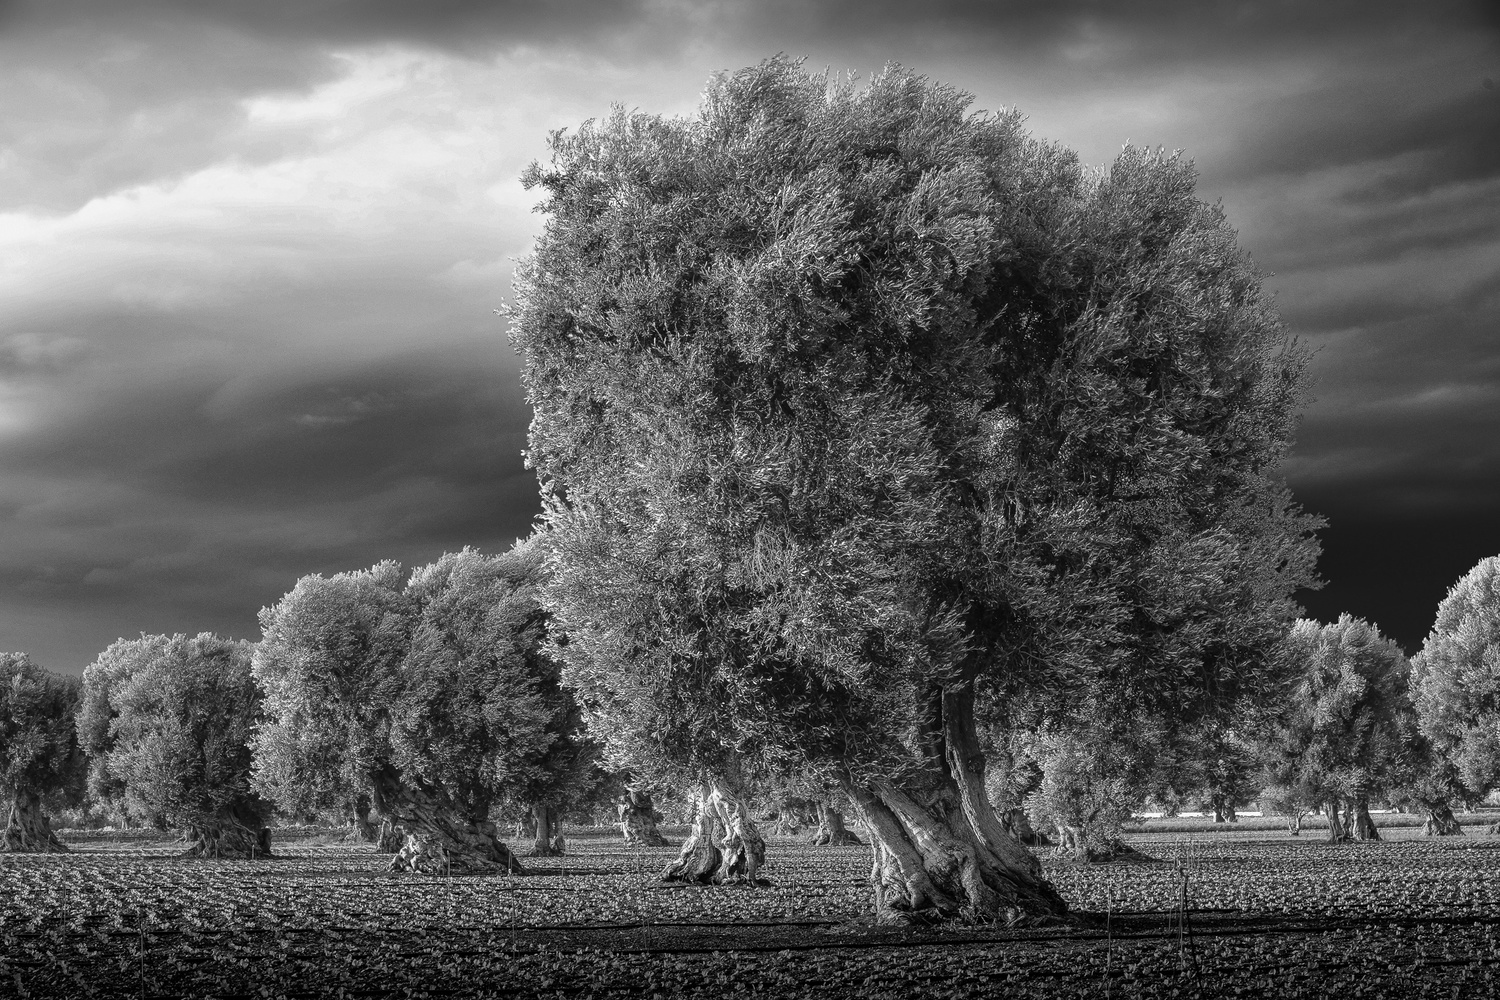 Olive trees in Umbria by Martin Weiss